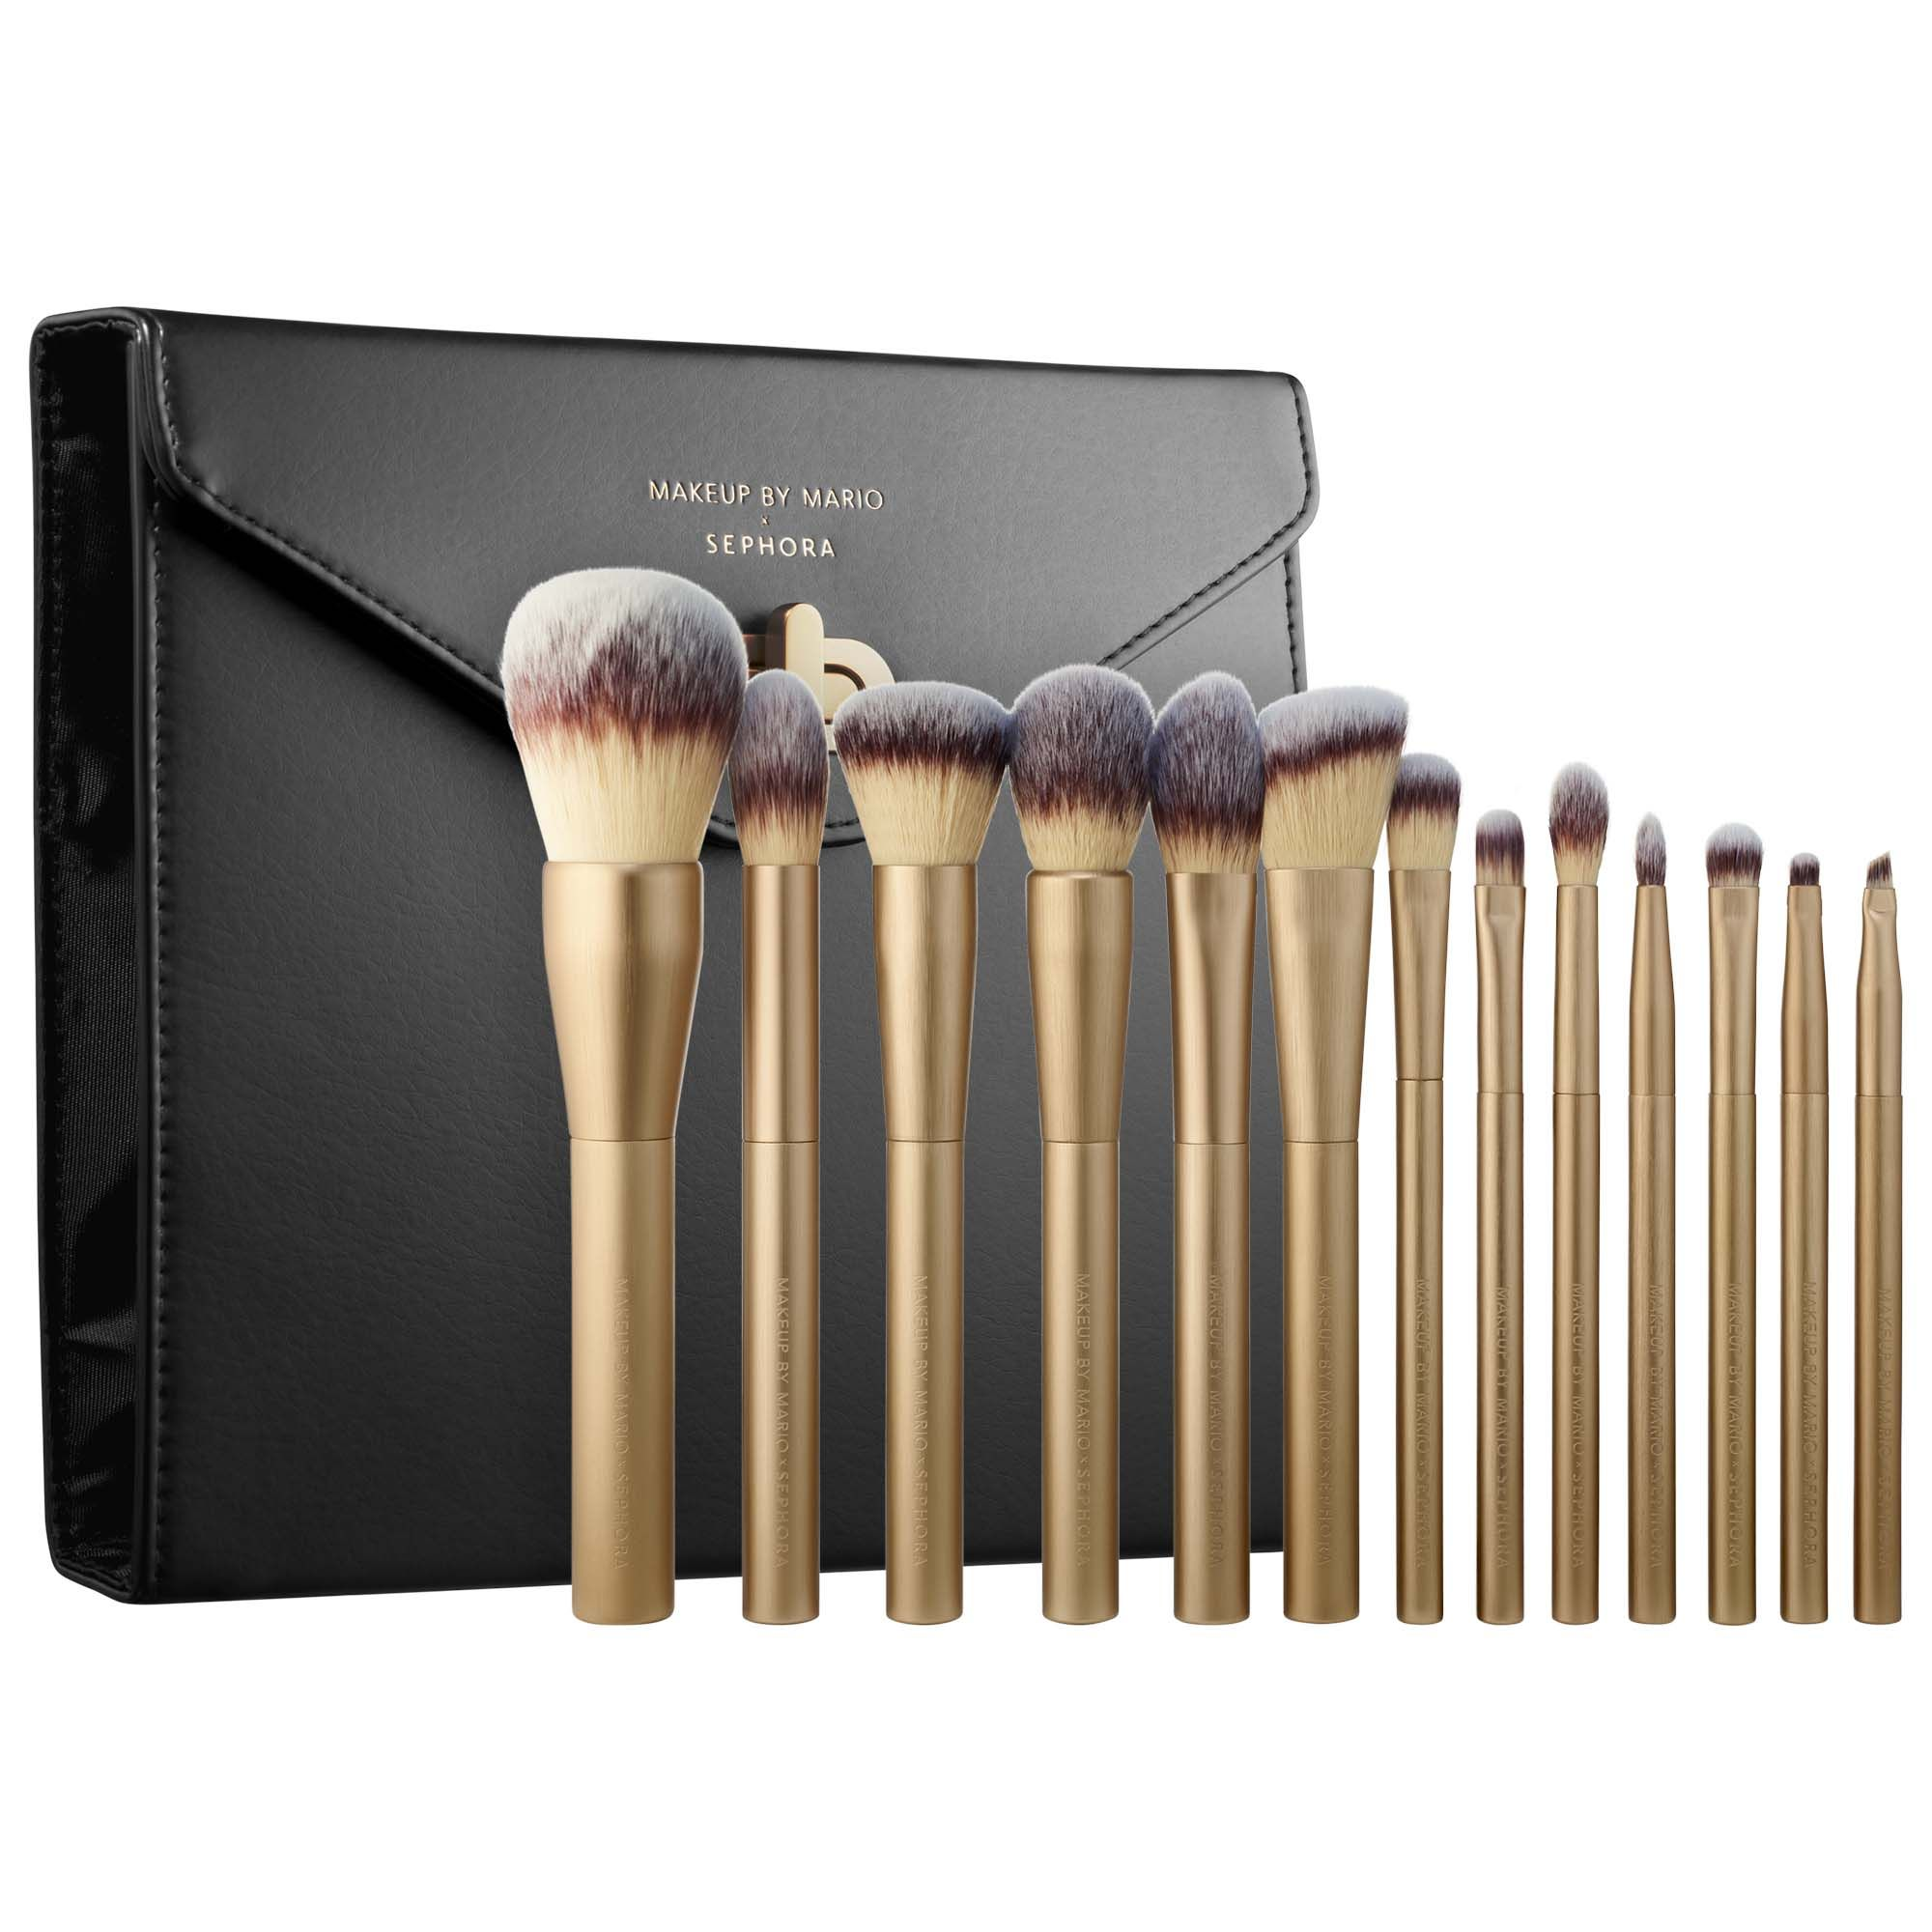 Makeup By Mario Sephora Brushes Review. Feels free to